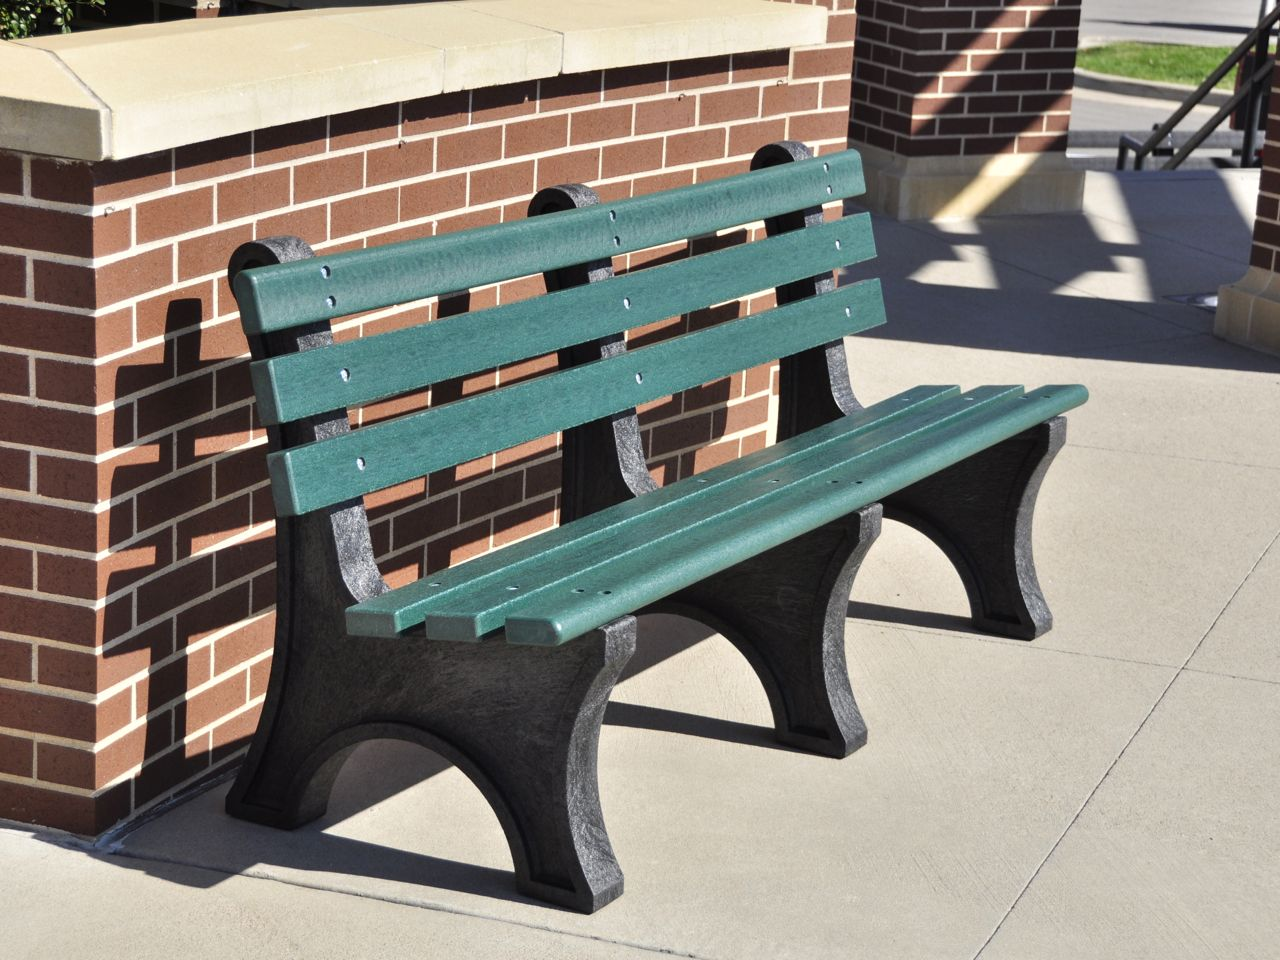 Central Park Bench By Jayhawk Plastics Benches For Park Outdoor Seating Aaa State Of Play